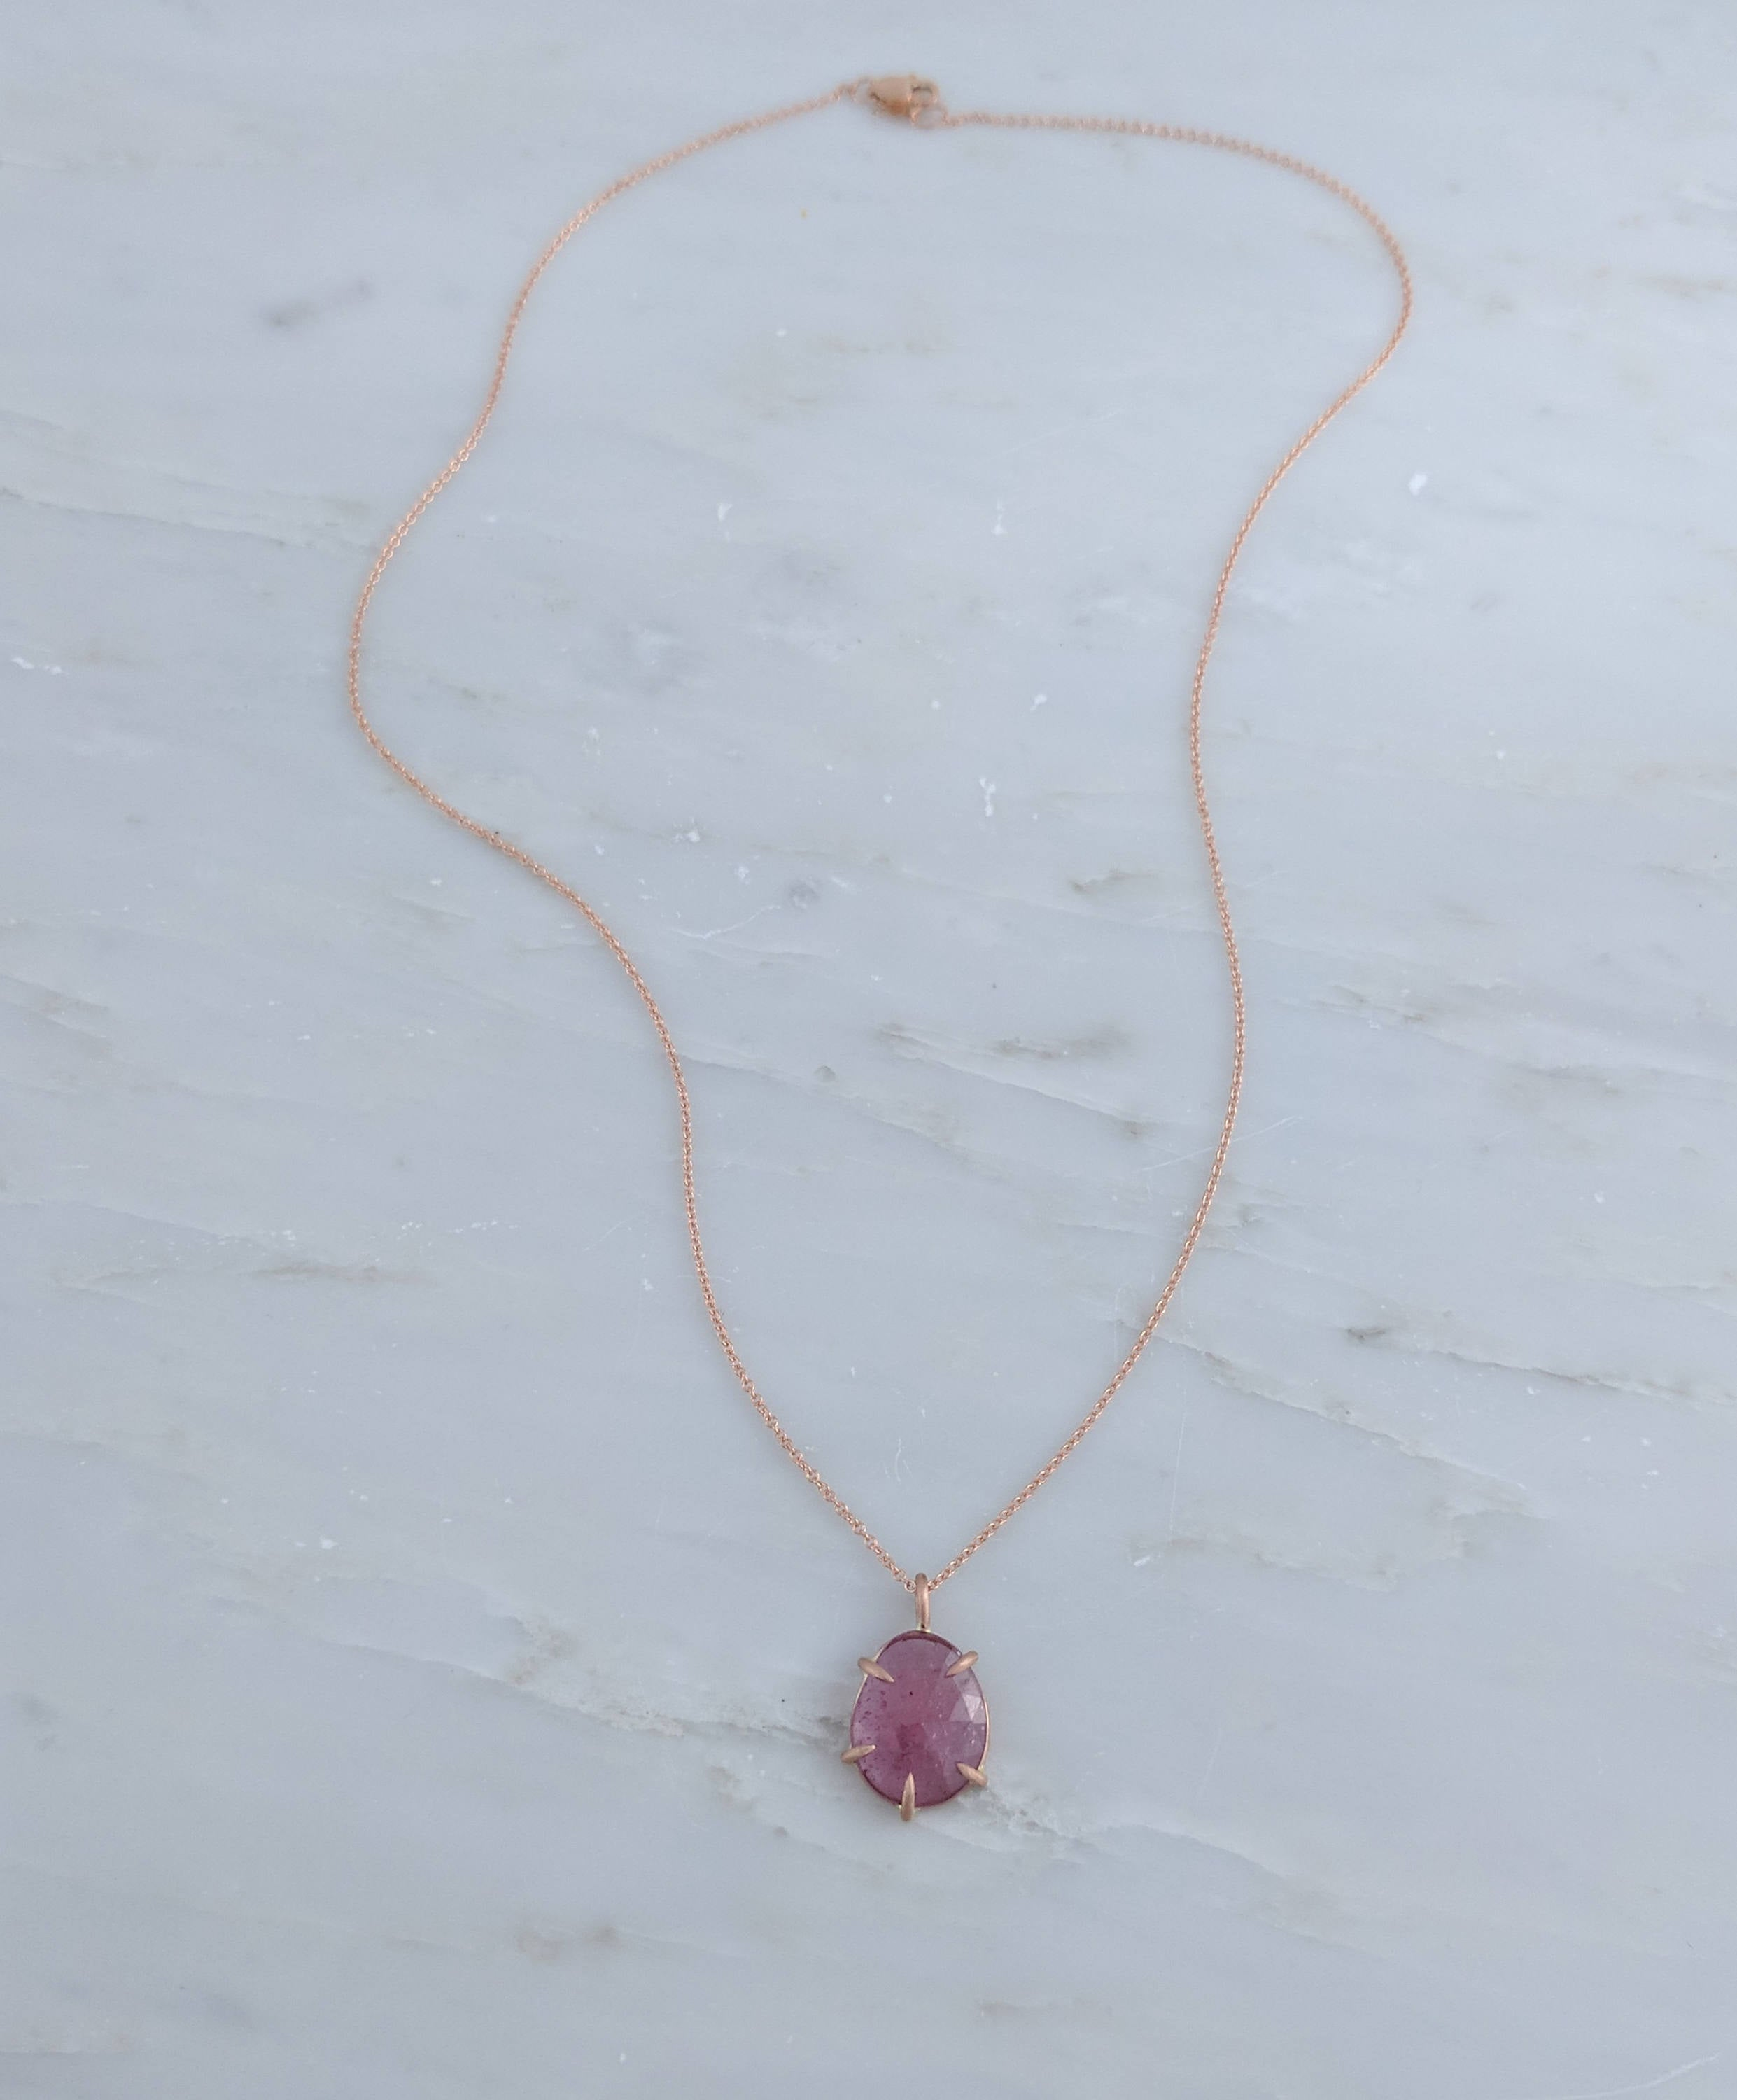 Rose Cut Sapphire Necklace in Rose Gold